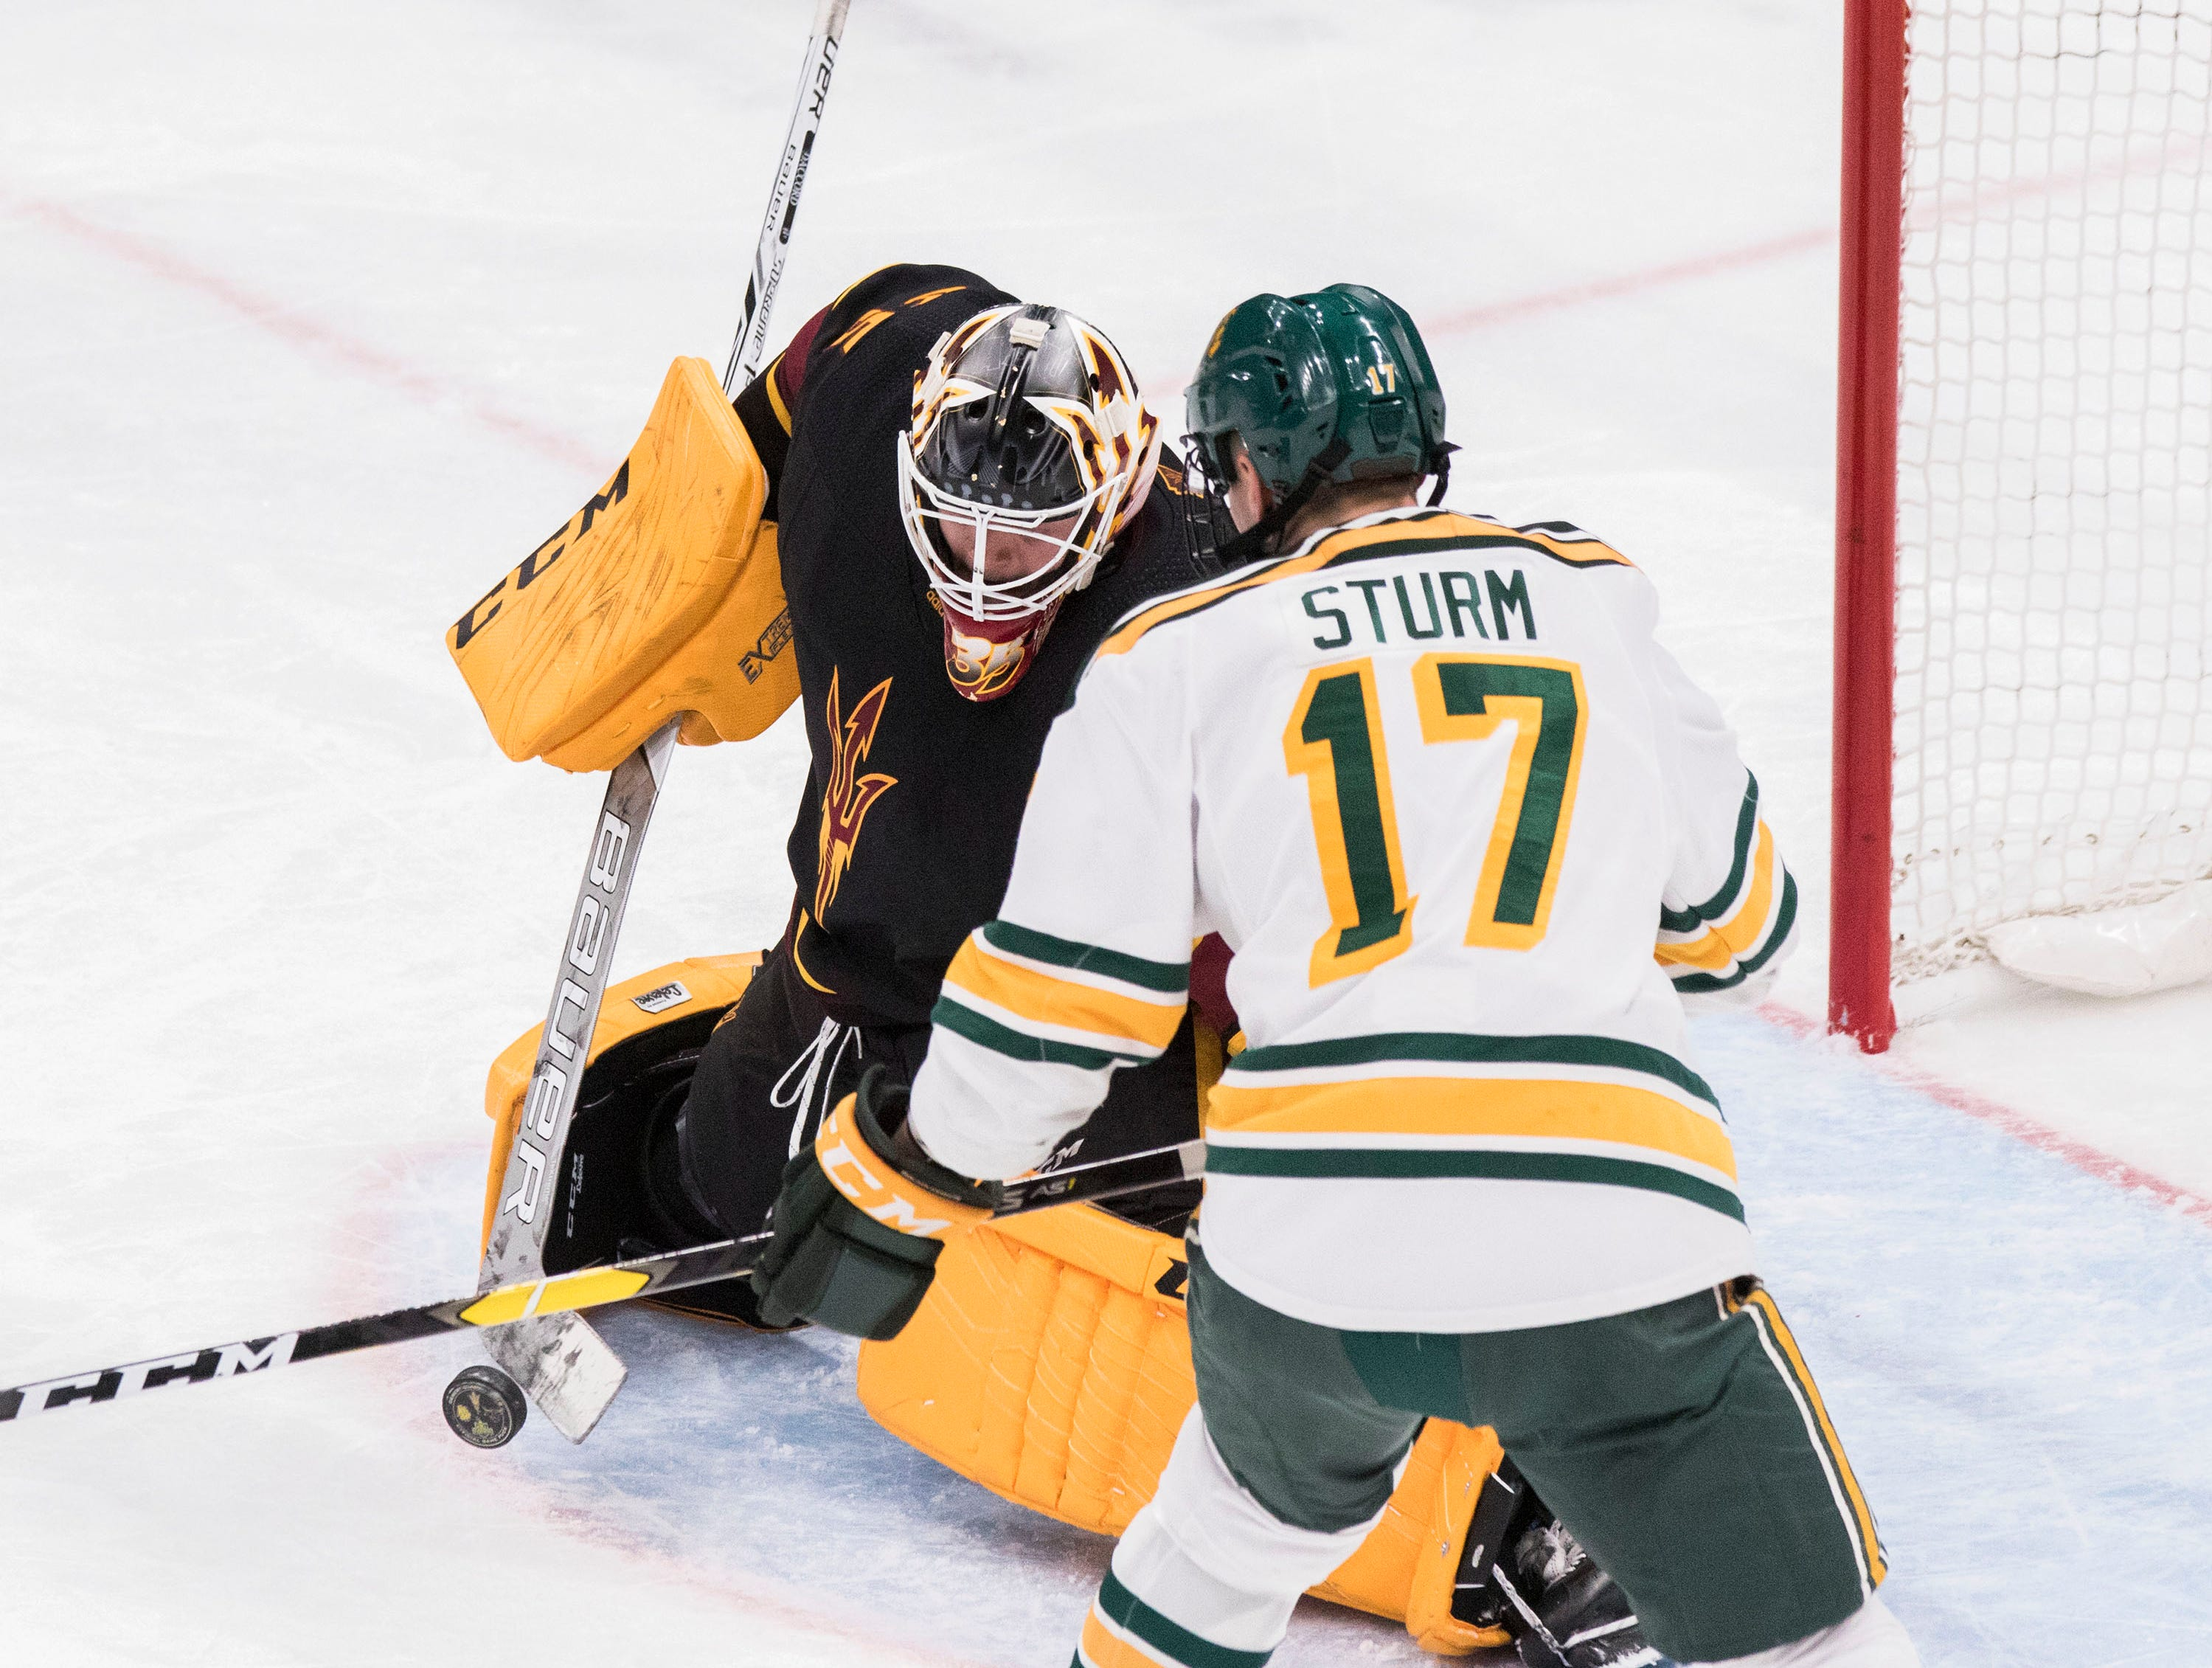 Arizona State University goalie Joey Daccord (35) saves the puck against Clarkson's Nico Sturm (17) during the first period of their game in the 2018 Desert Hockey Classic in Glendale, Friday, Dec. 28, 2018.